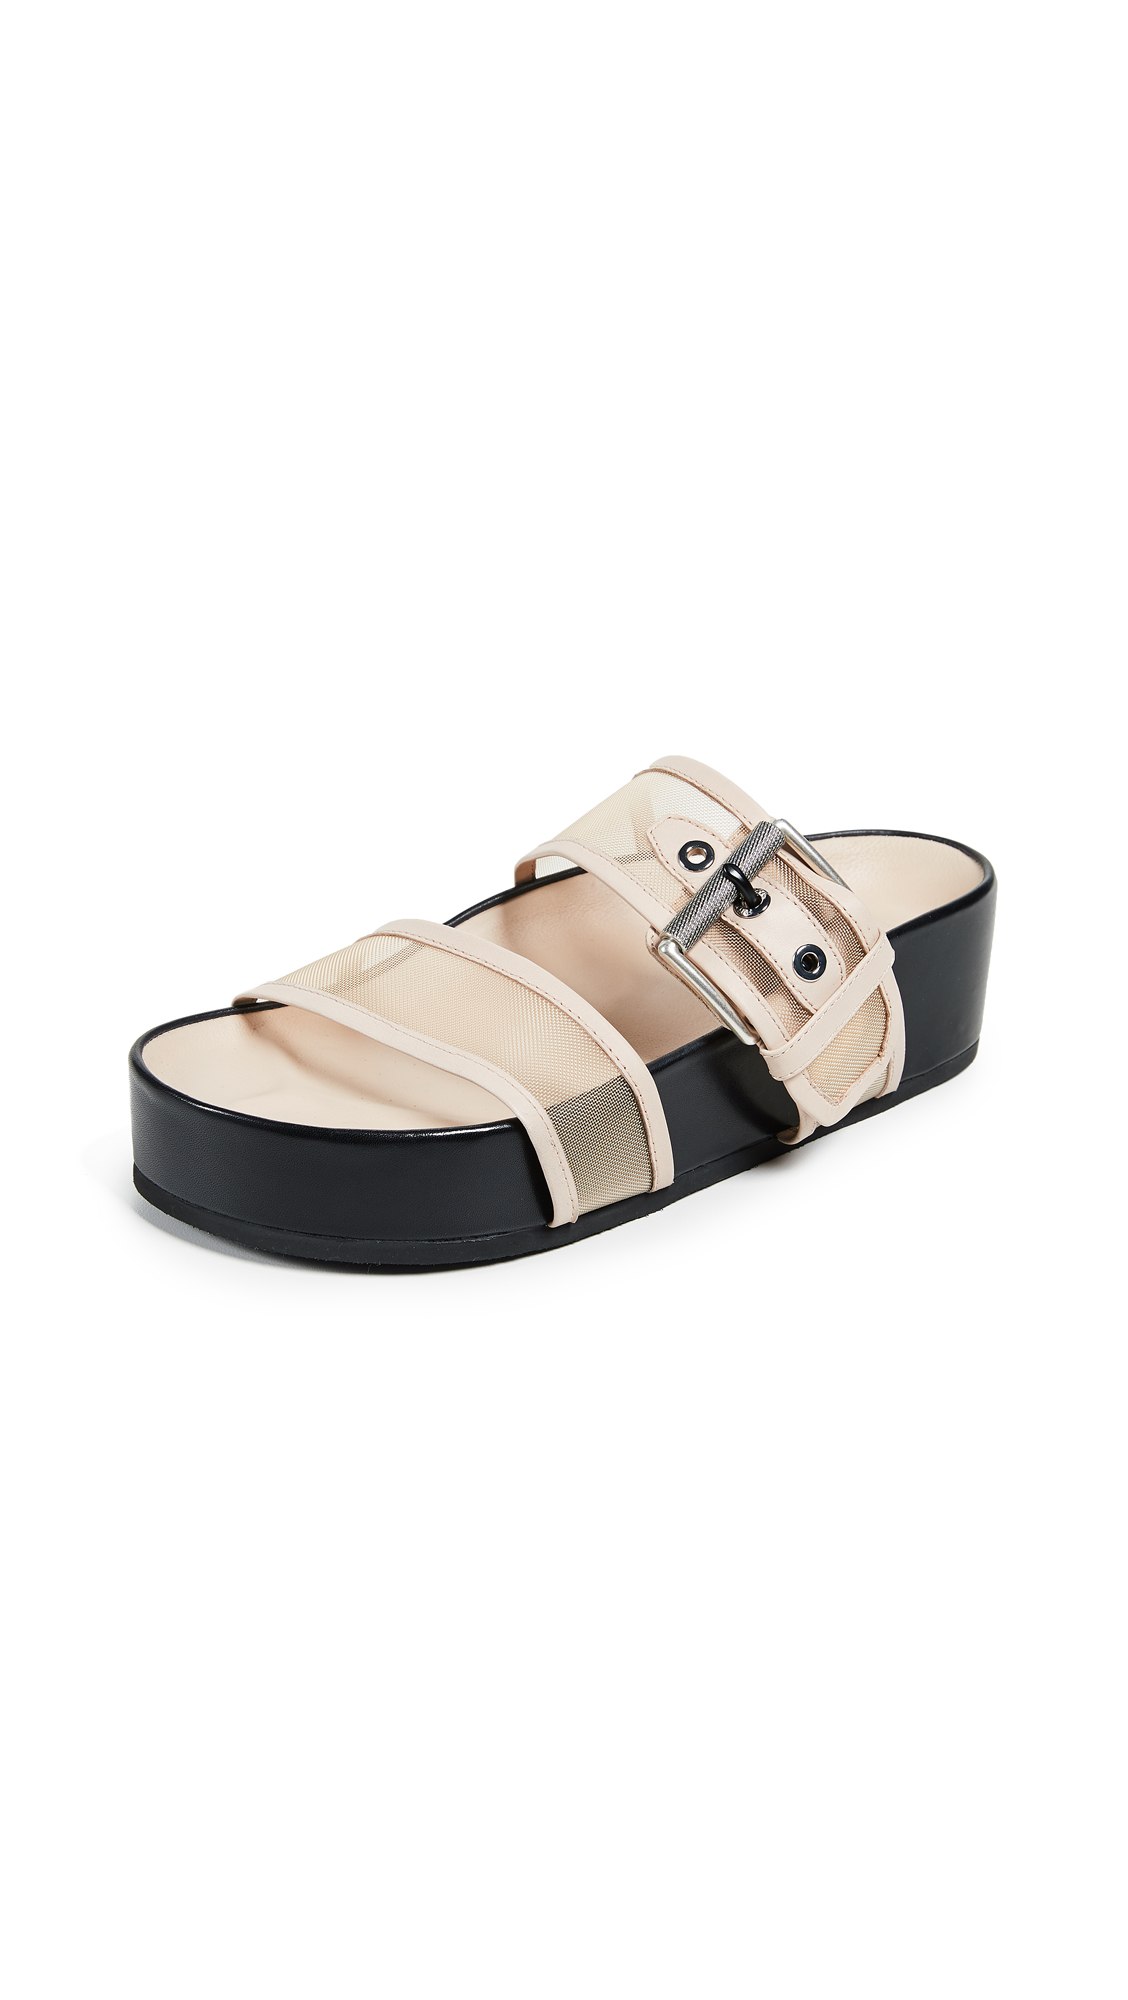 Rag & Bone Evin Platform Slides In Nude